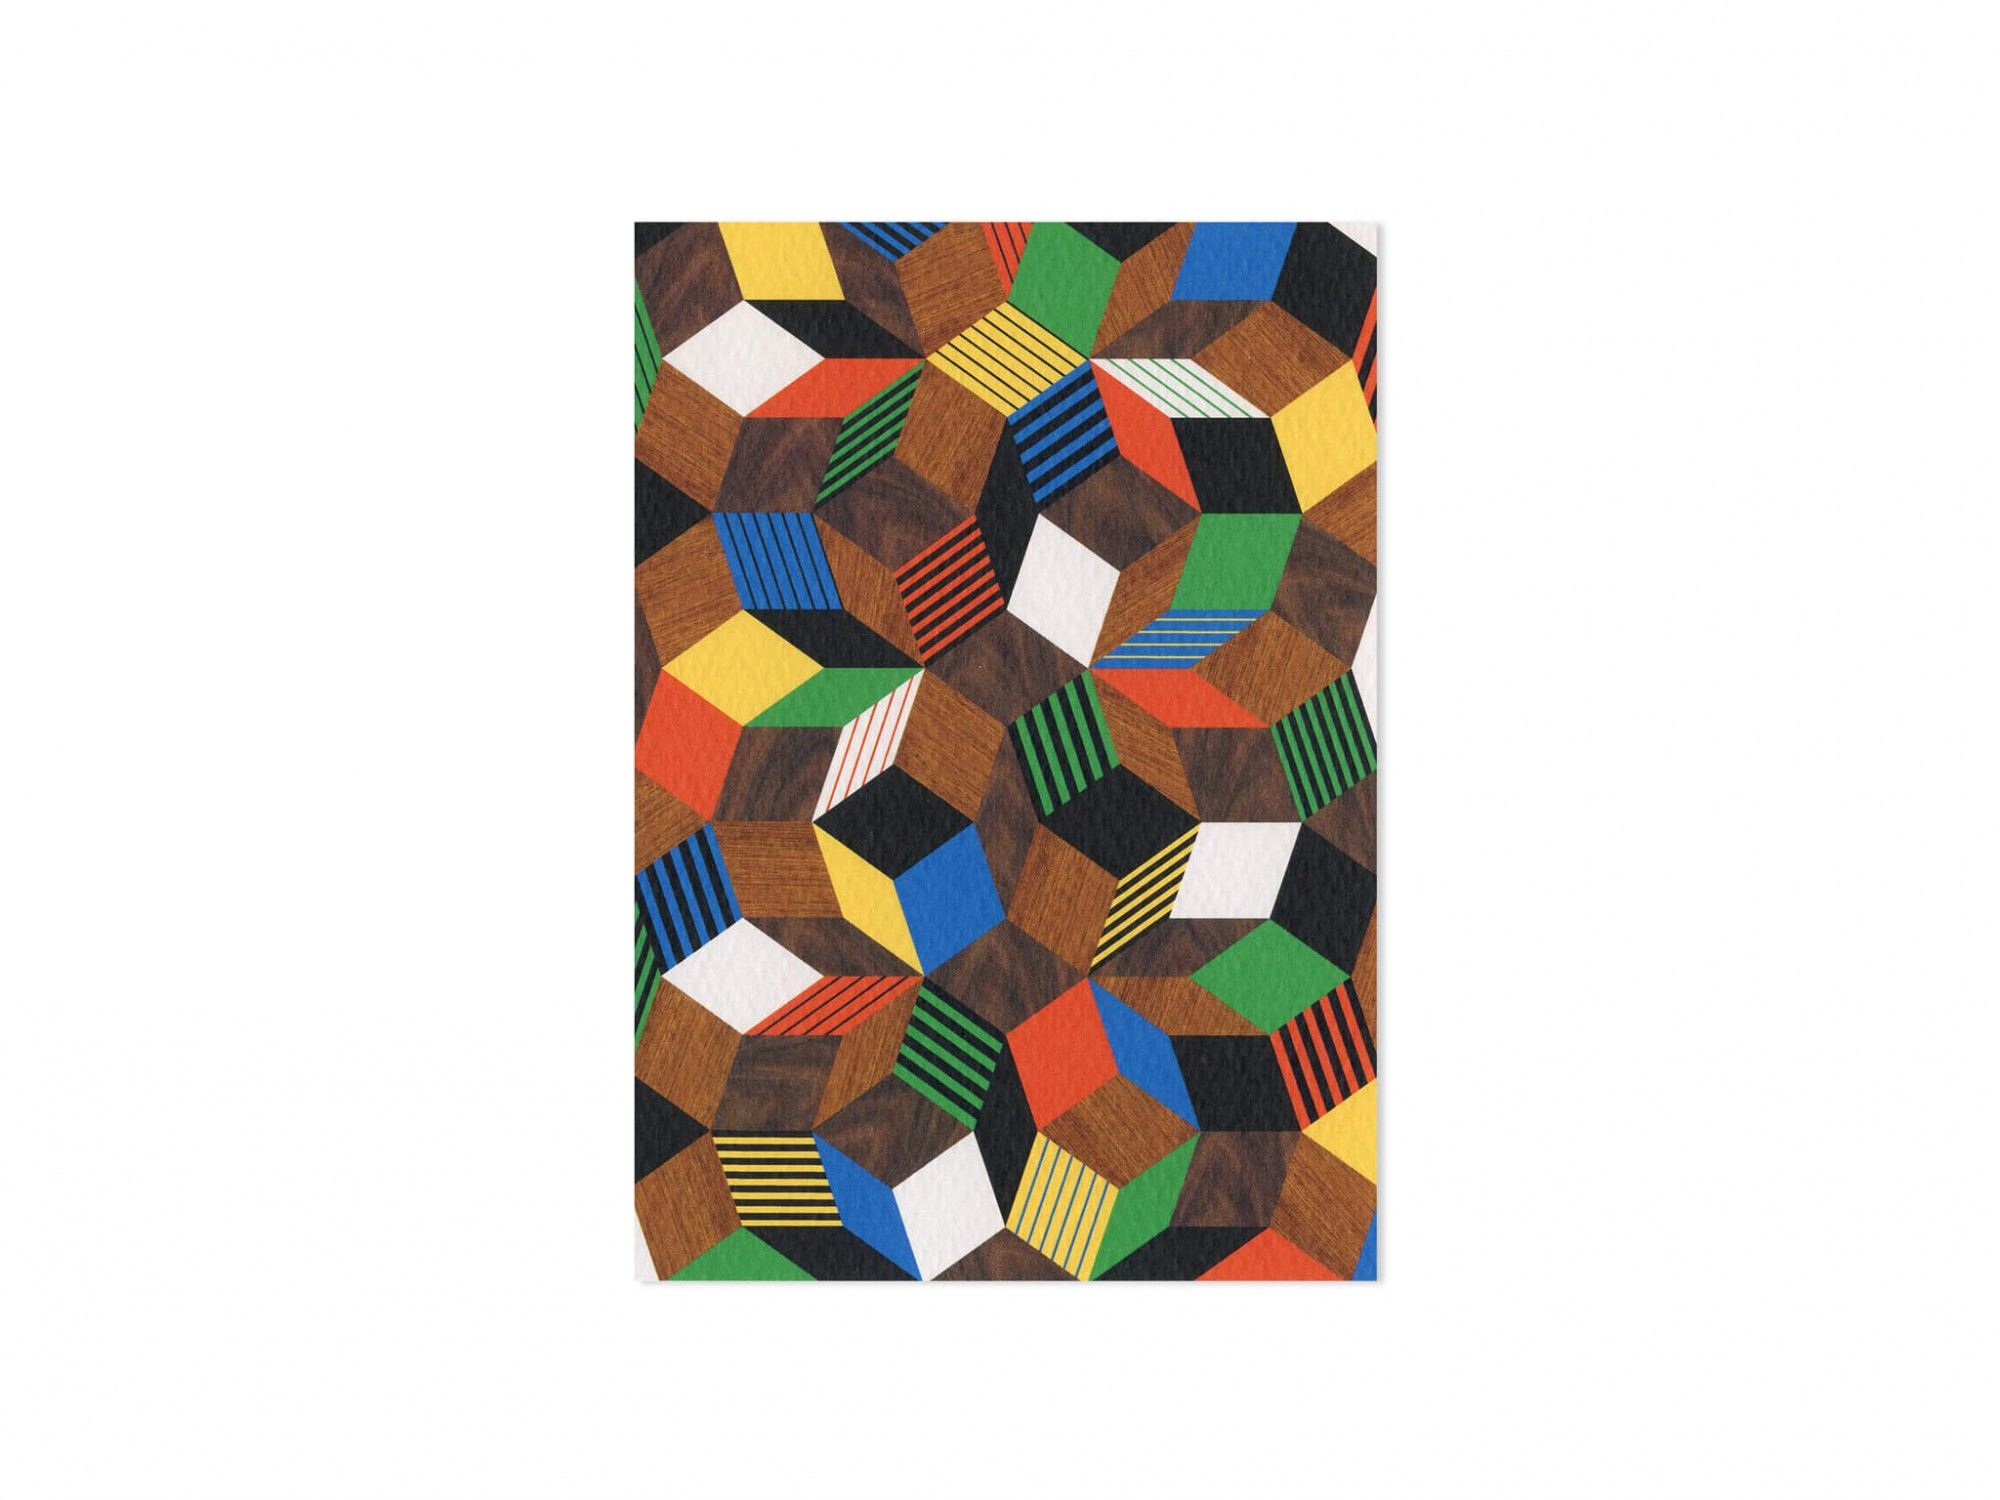 carte Penrose Crazy Wood, Une collection de cartes postales graphiques dessinés par les artistes Ich&Kar.